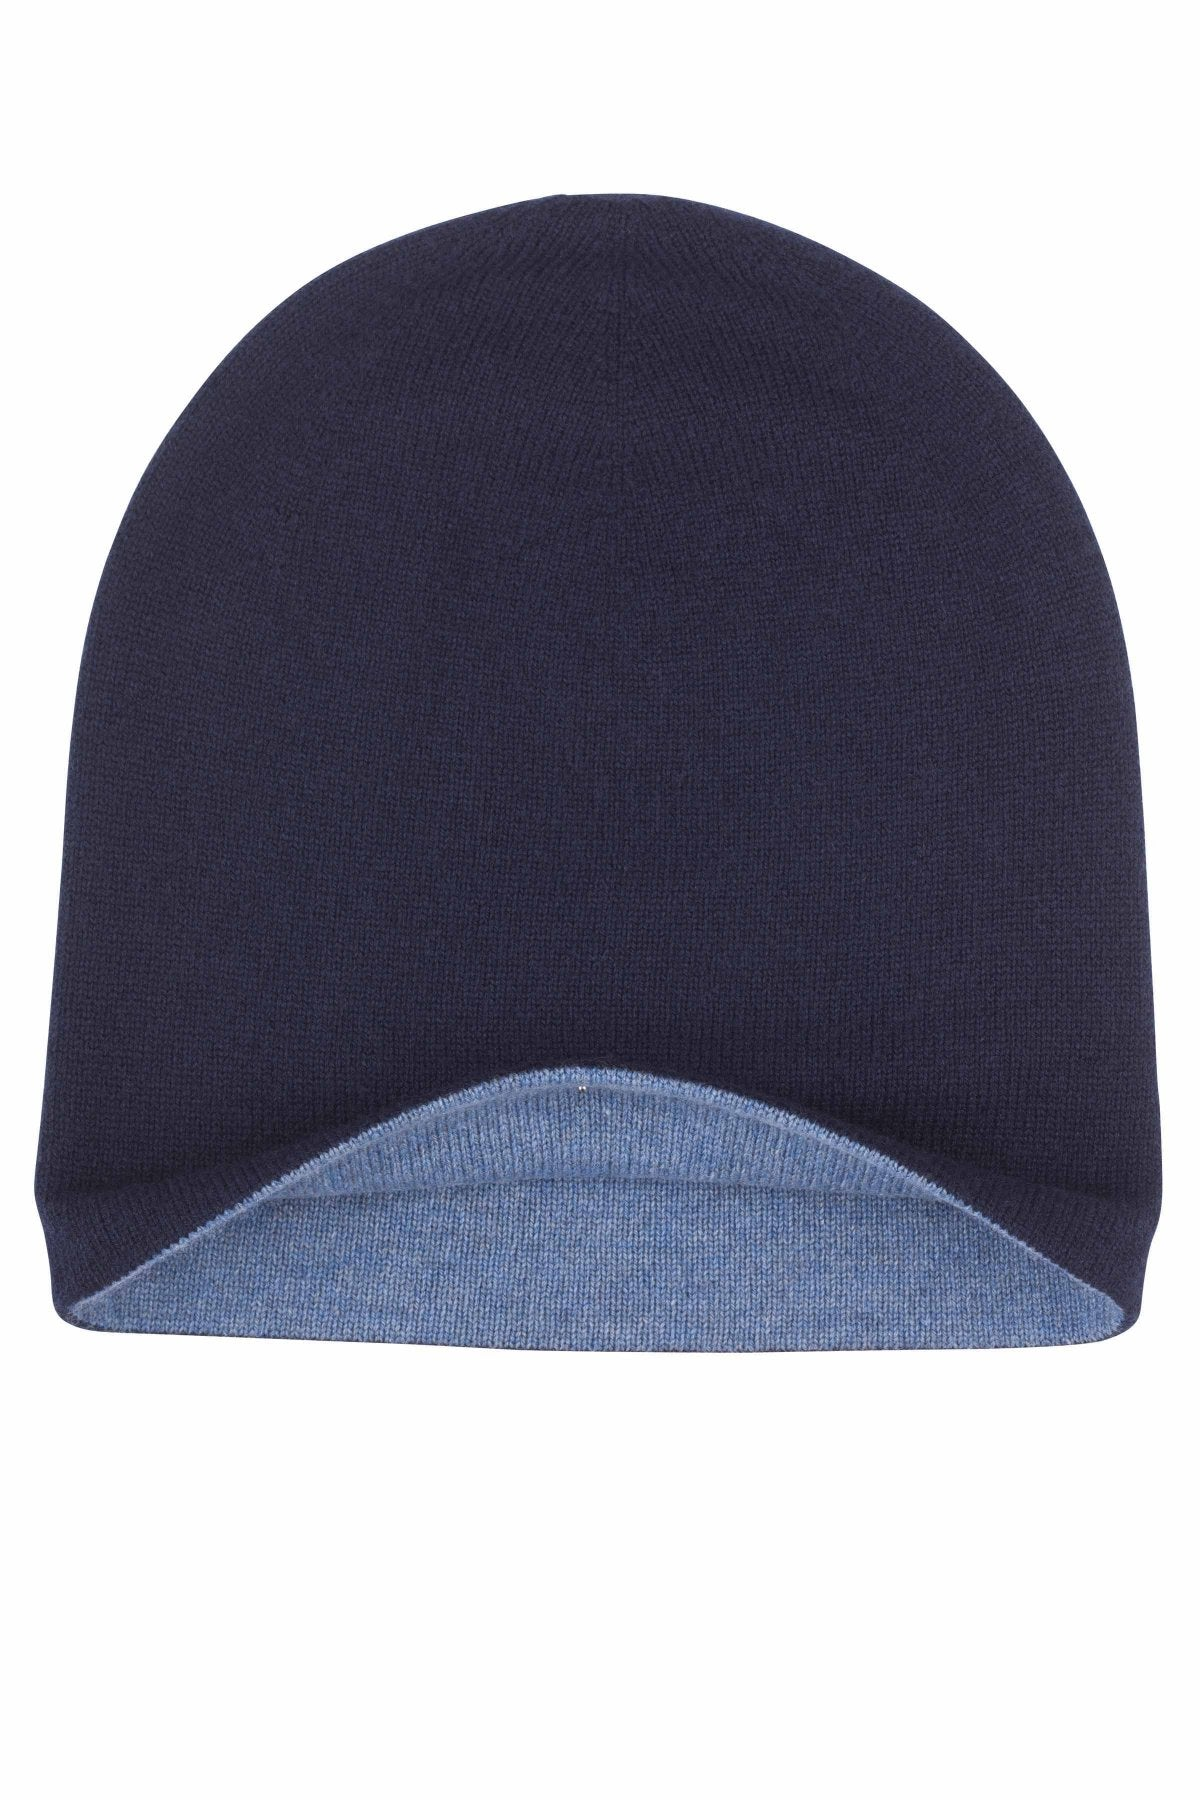 Denim & Navy Reversible Cashmere Hat